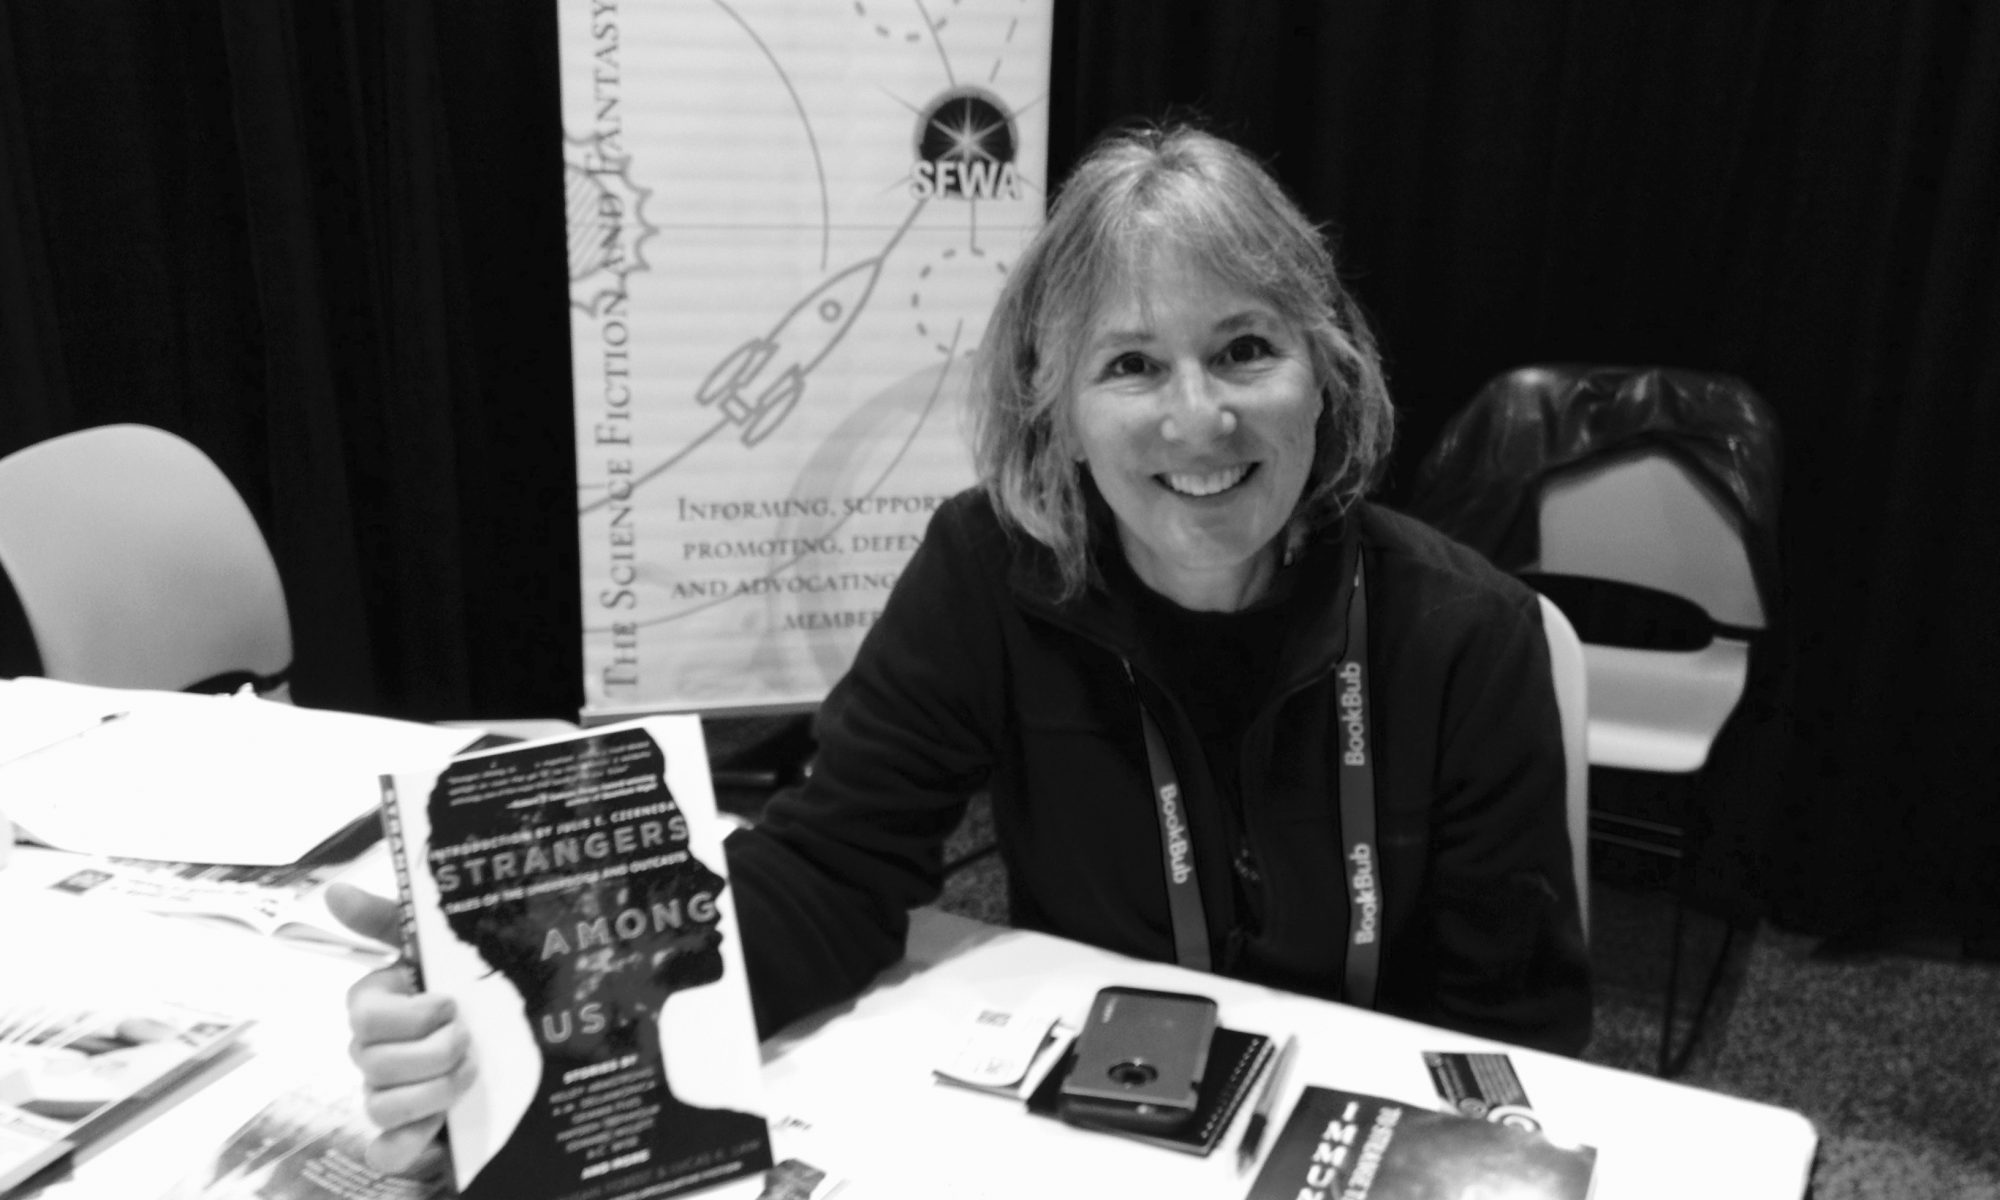 Susan Forest attends SFWA event